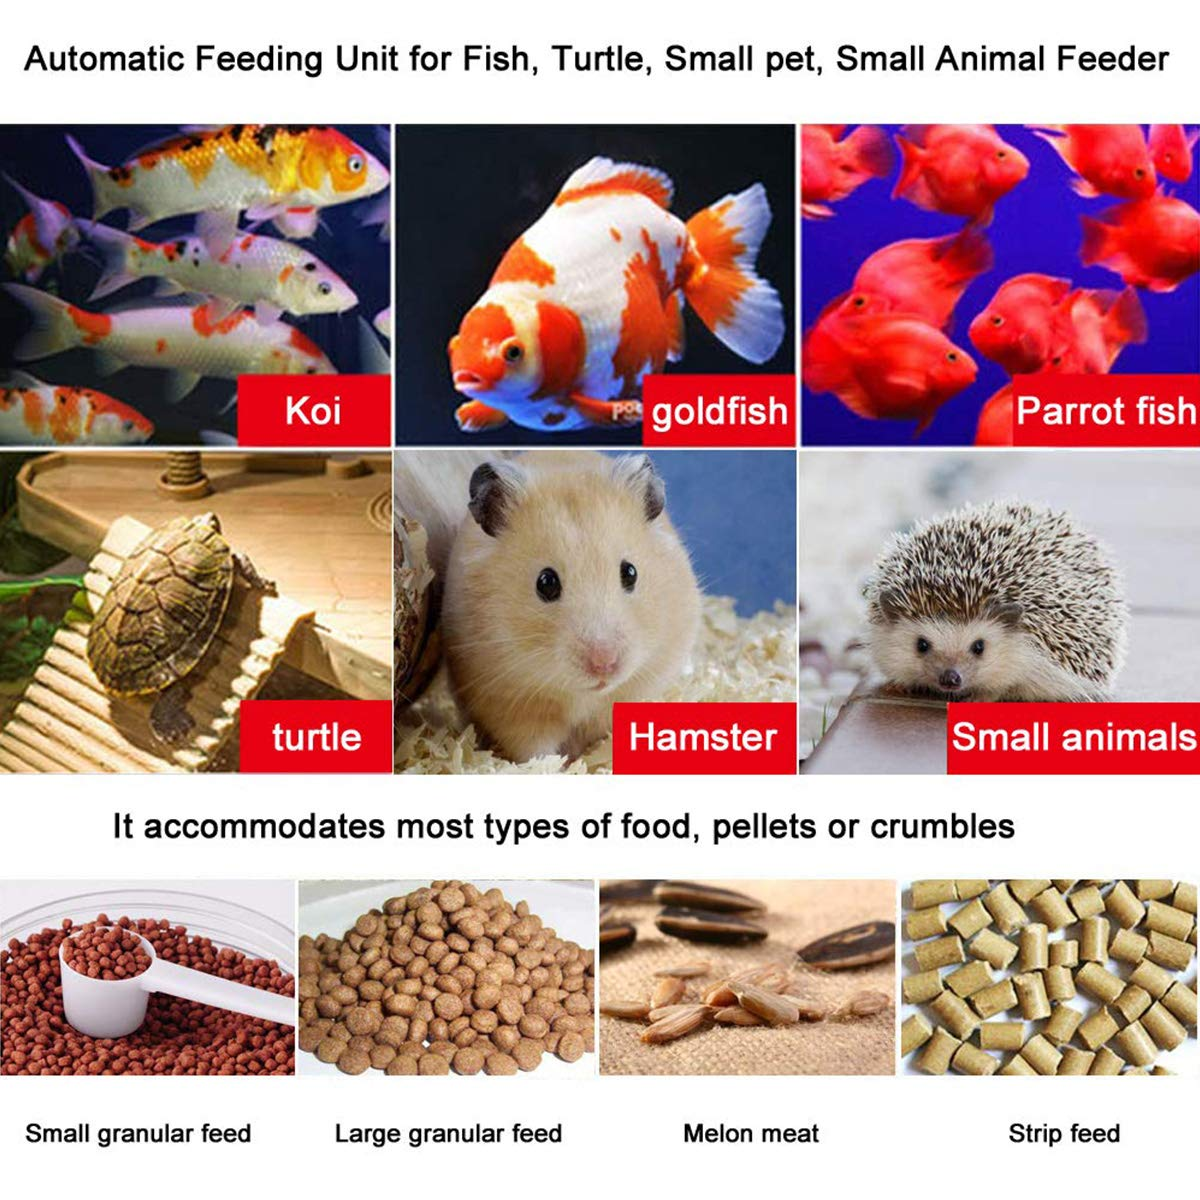 Automatic Fish Feeders by ALZERO, Electric Automatic/Manual Fish Feeder, Aquarium Tank Timer Feeder & Weekend 2 Fish Food Dispenser (AK-03) by ALZERO-Pet Supplies (Image #7)